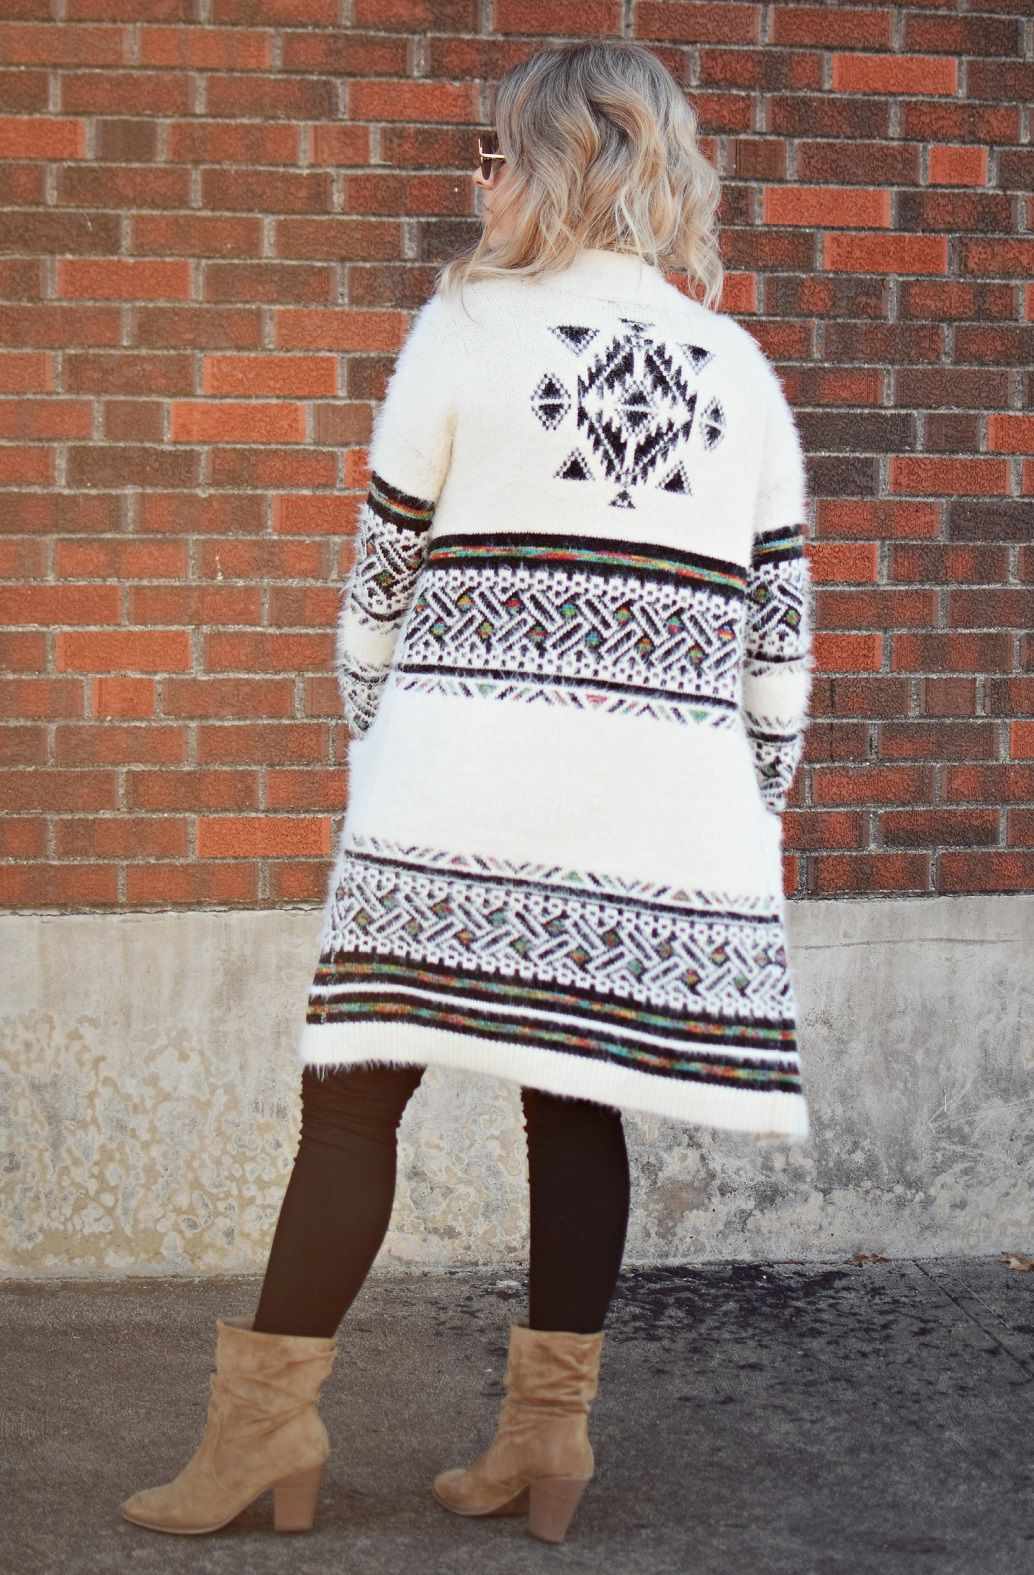 bohemian style cardigan sweater with black jeans and tan booties